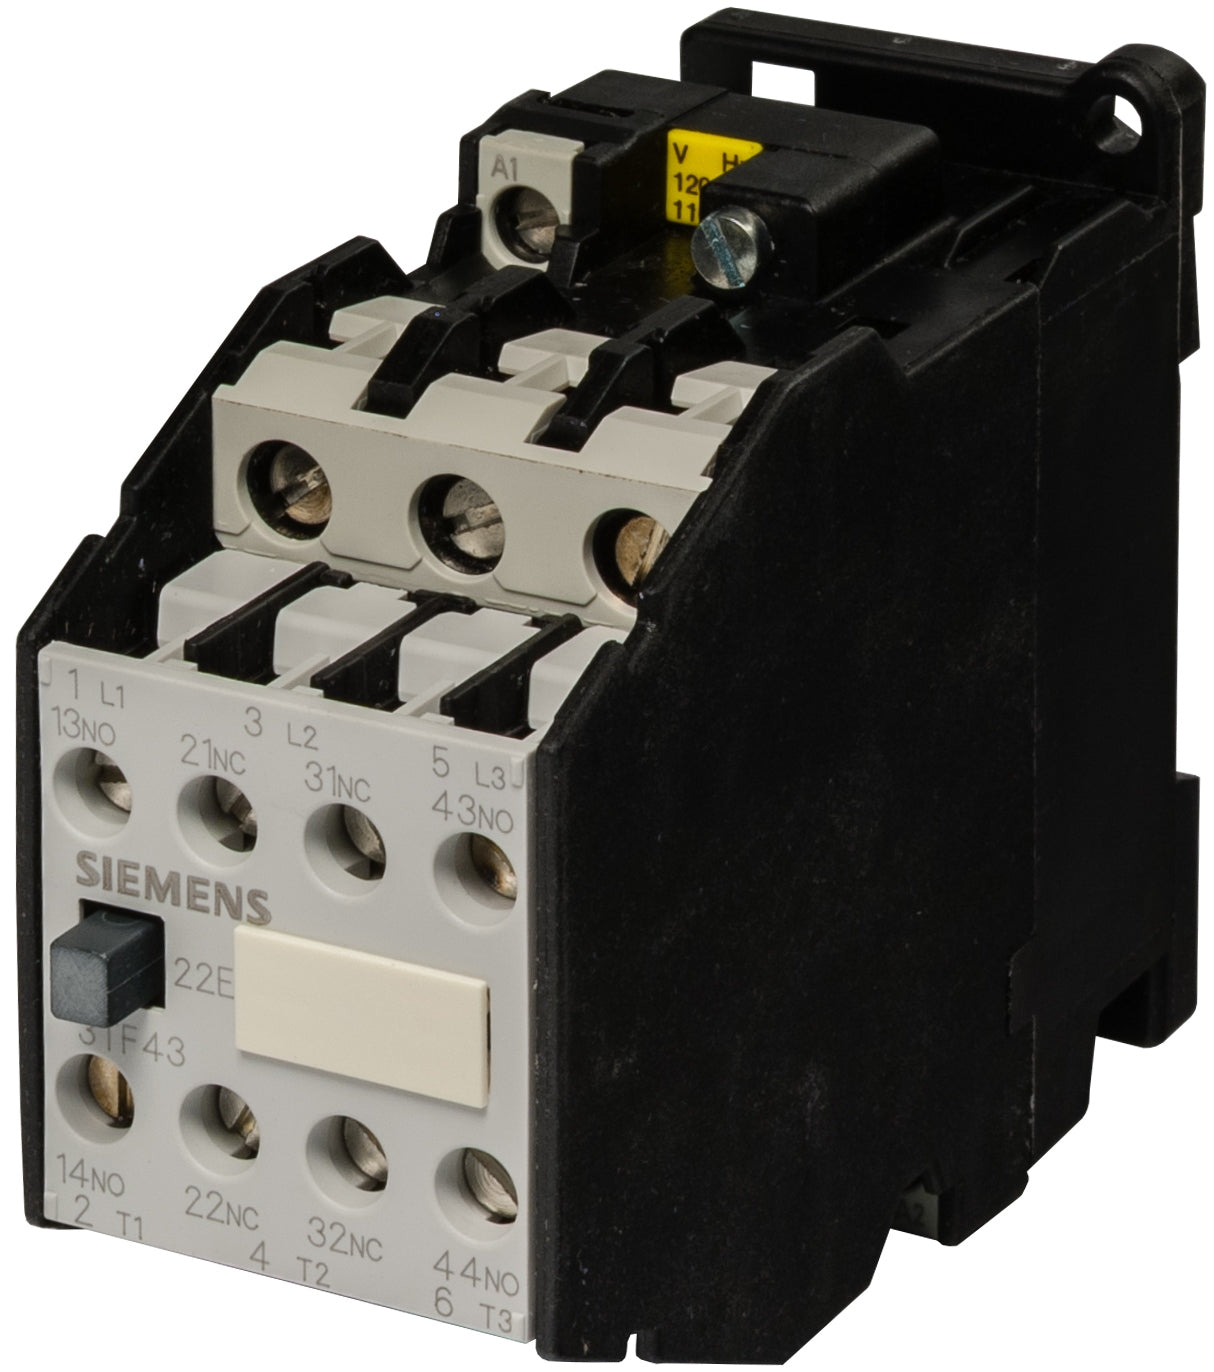 8 Frame Size Siemens 3TY6523-0BF4 Contactor DC Replacement Coil 110VDC Coil Voltage 3TY65230BF4 Used with 3TC Devices